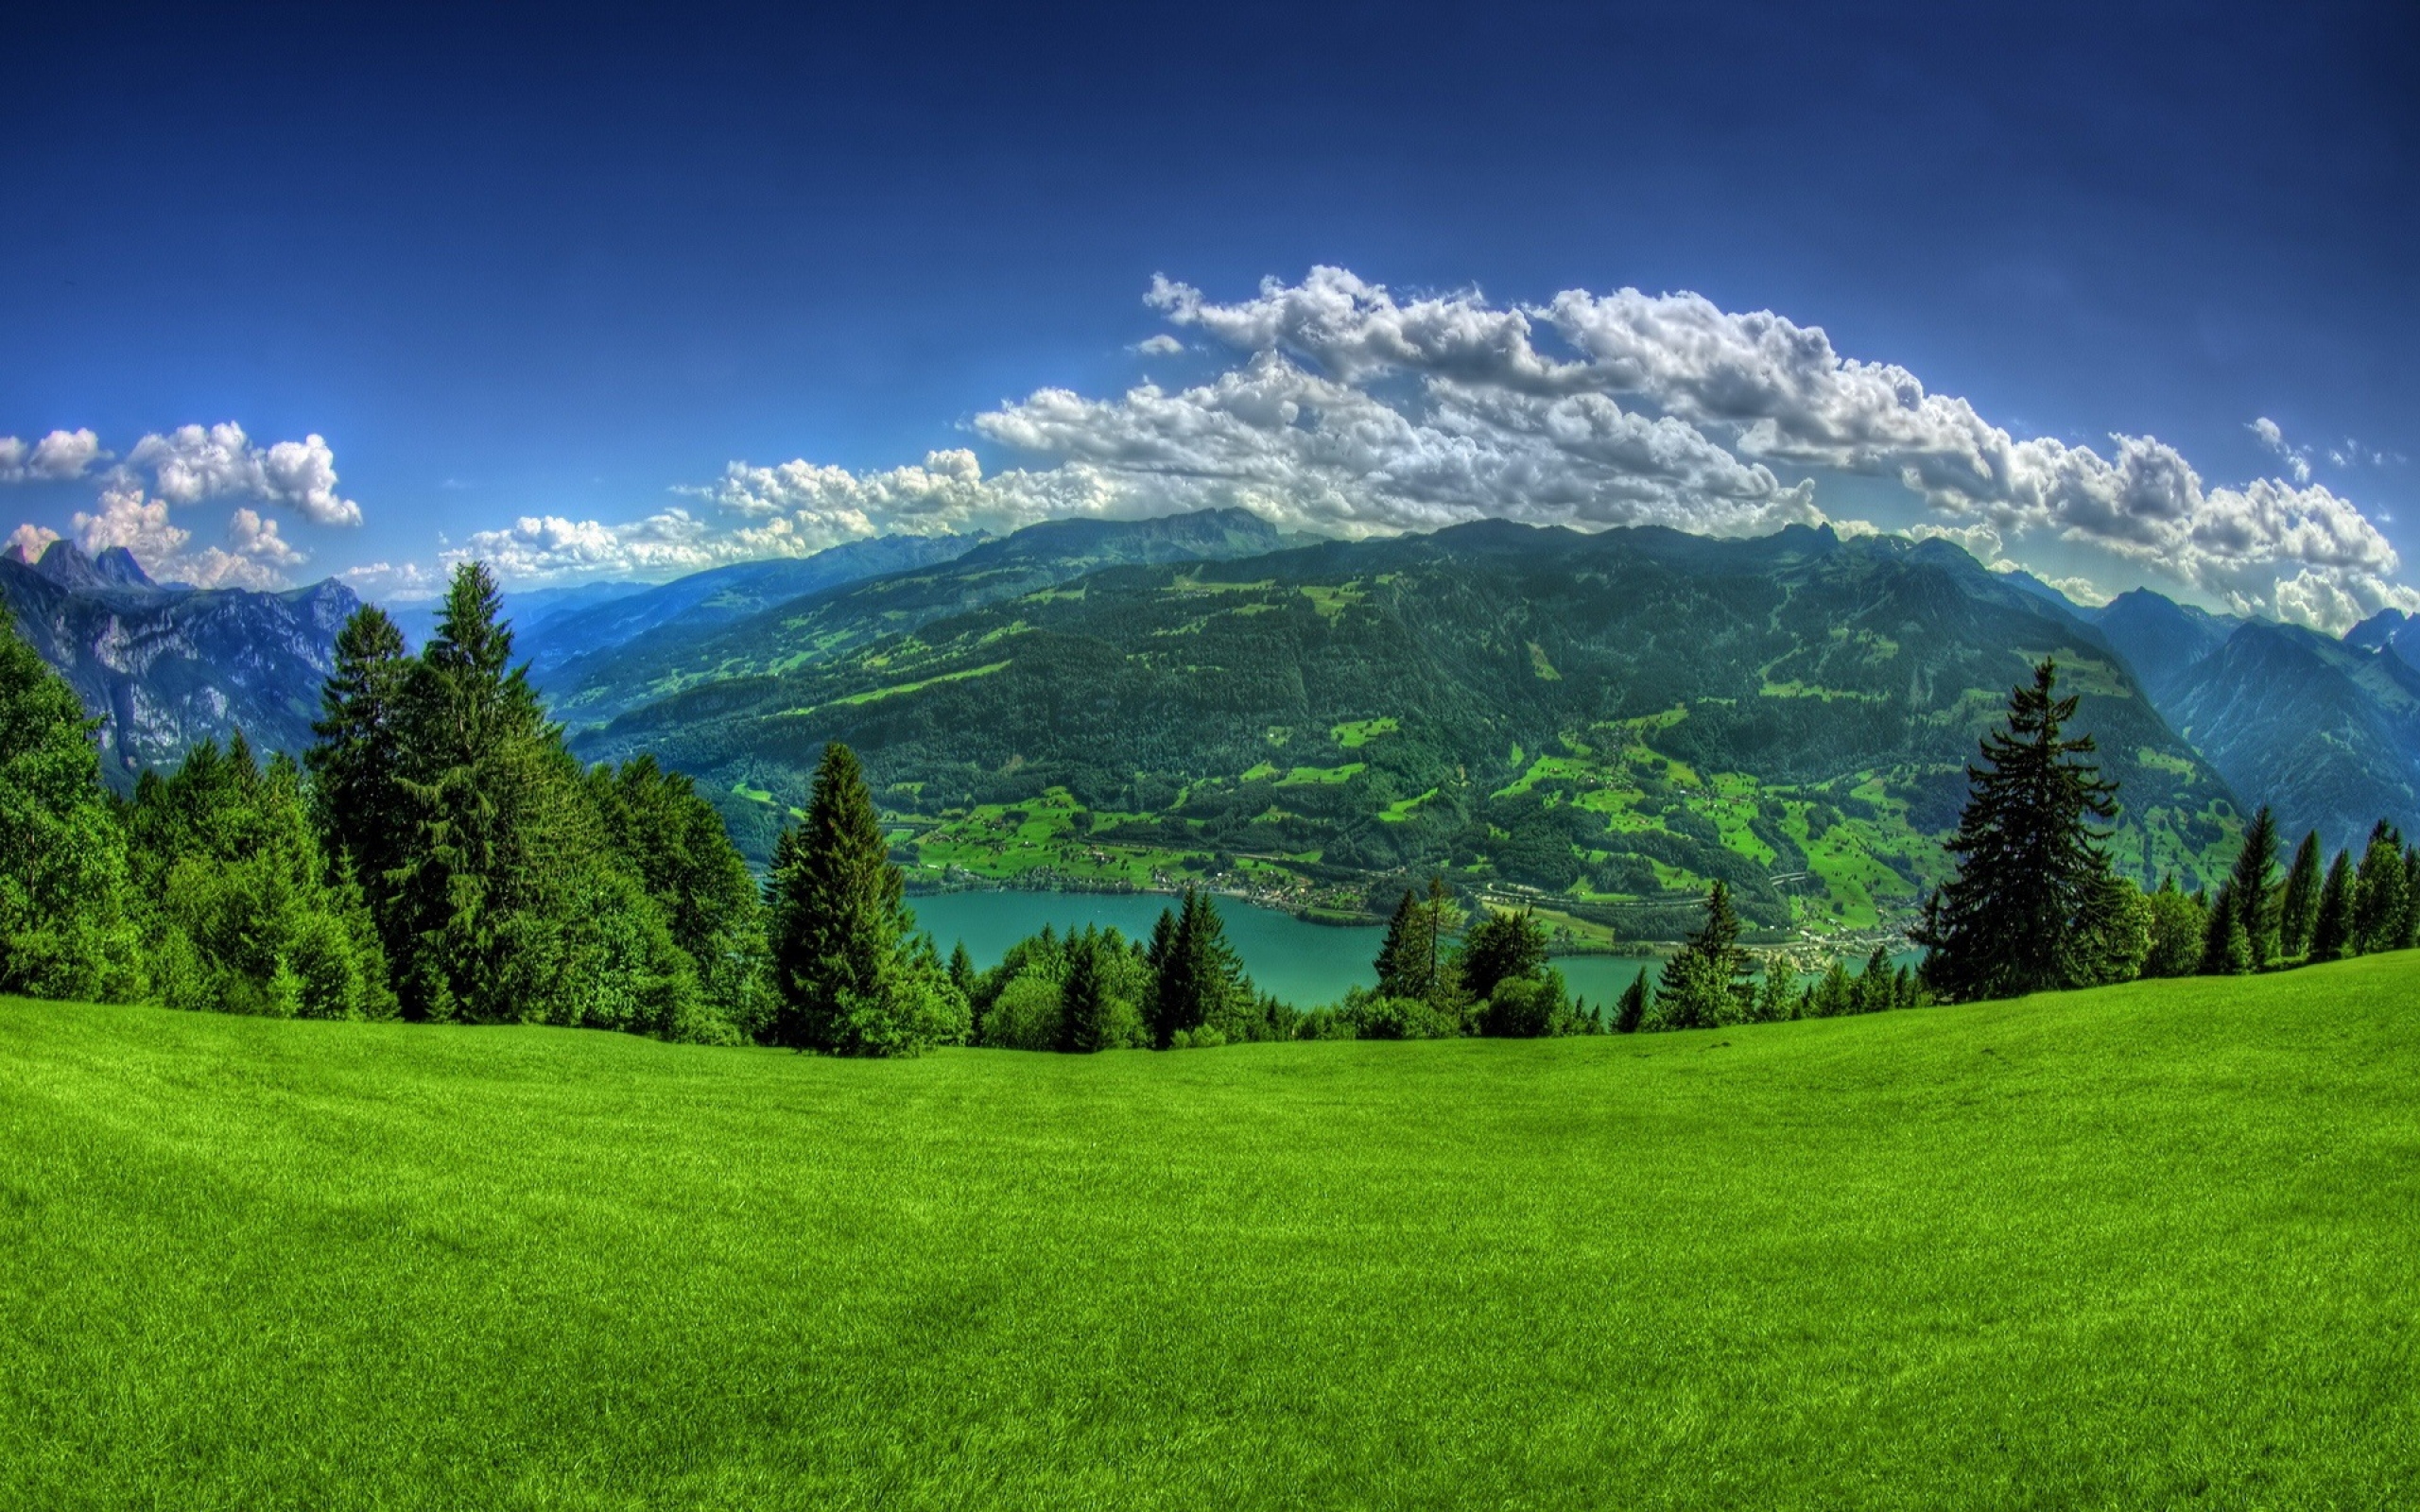 Grass And Sky Wallpapers Background - Excitelt com